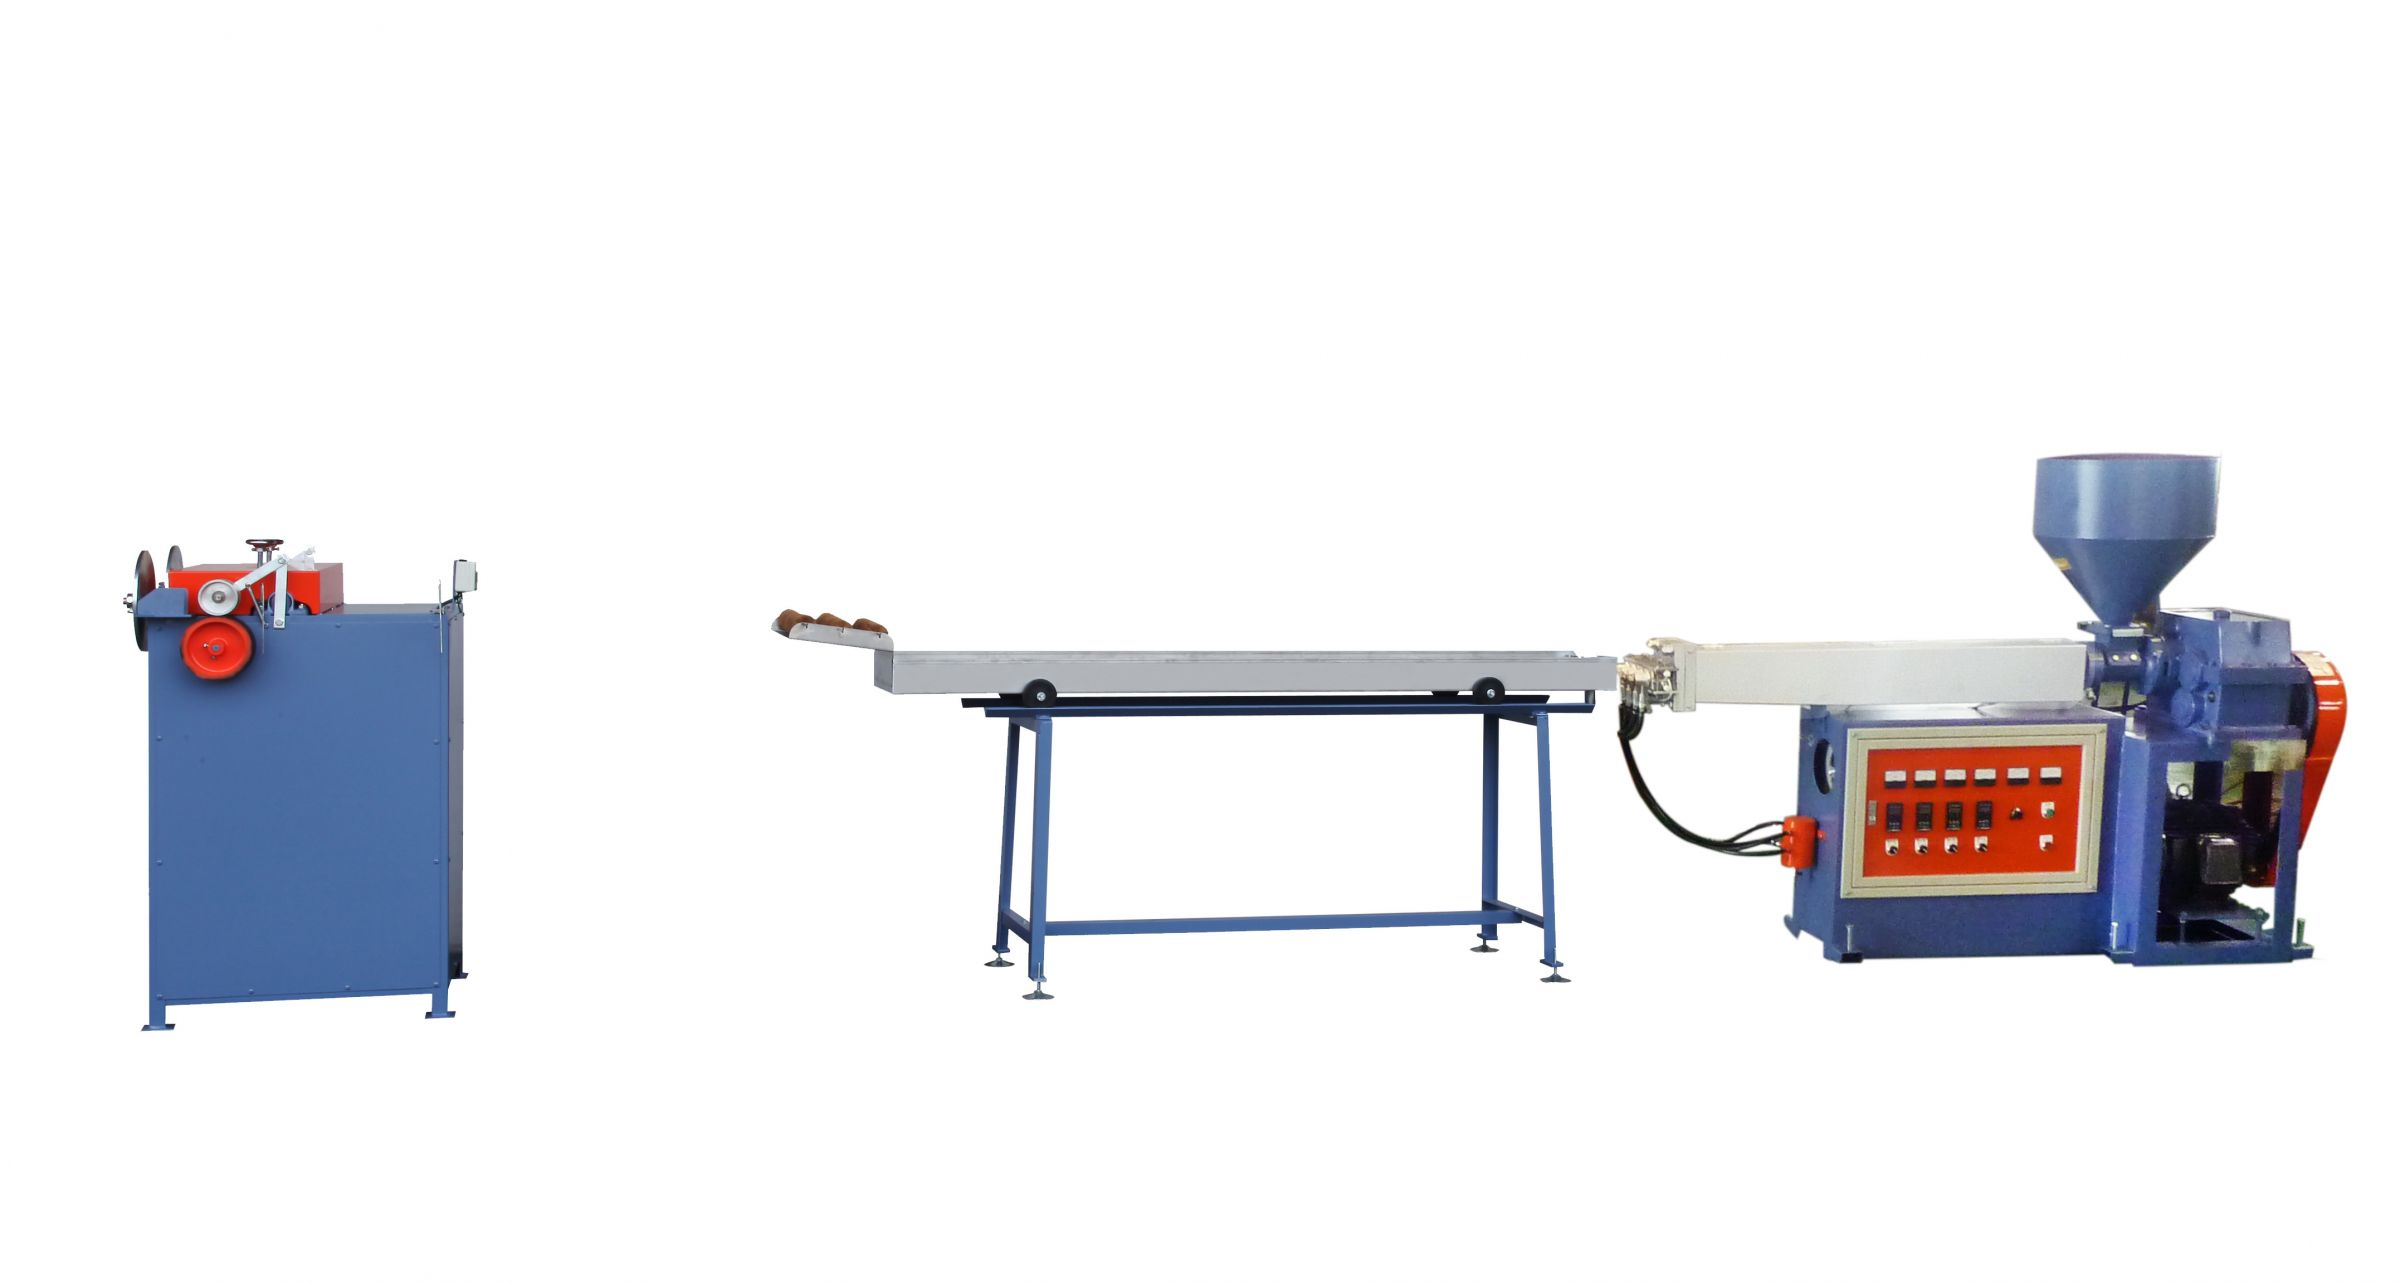 PP Straw Extruding Machine, with Water Colling Tank and Cutter, Model: V-TY-65M